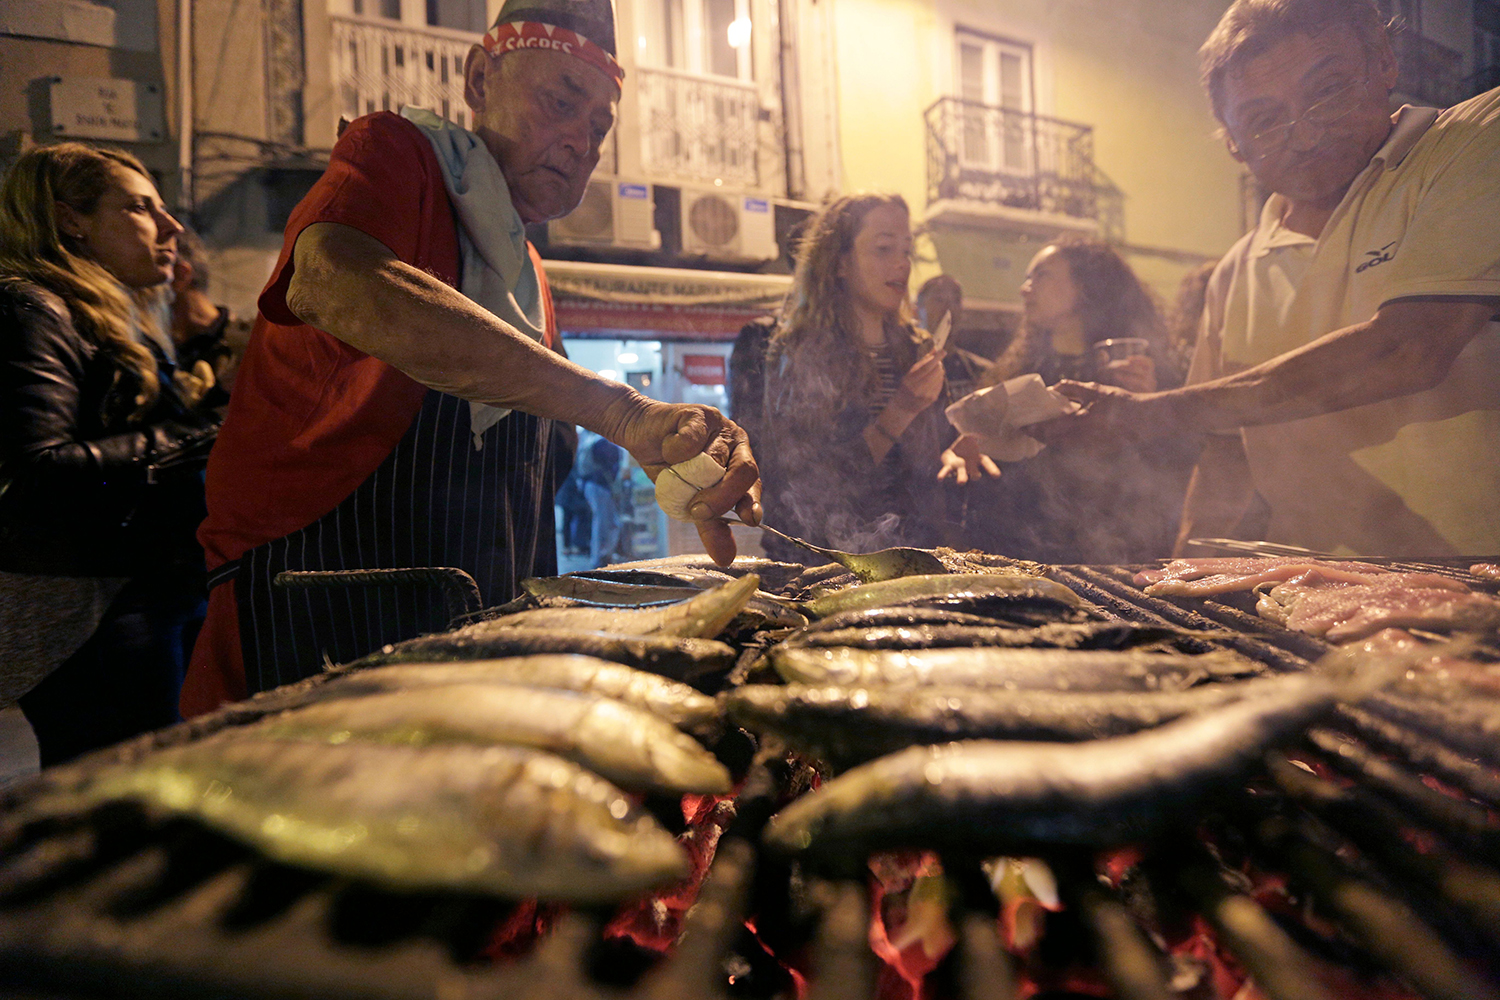 Cooks turn sardines over the grill during the St. Anthony's Day Parade.